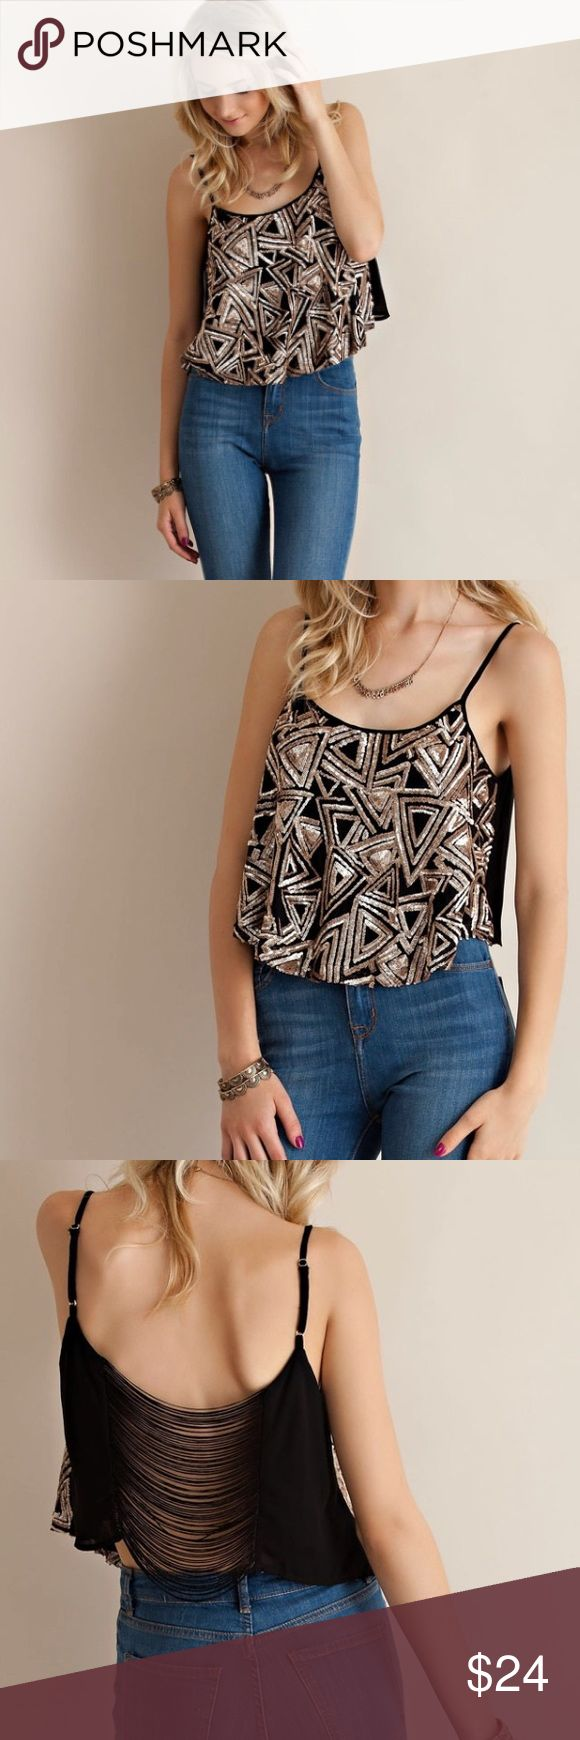 Geometric gold sequin top PreOrder A sequined crop top featuring fringes on back. Open back. Adjustable straps. Woven. Lightweight. 100% polyester, comes in small medium and large. Please note these aren't in stock yet, waiting on shipment. Comment size for hold. Price is firm unless bundled Tops Tank Tops